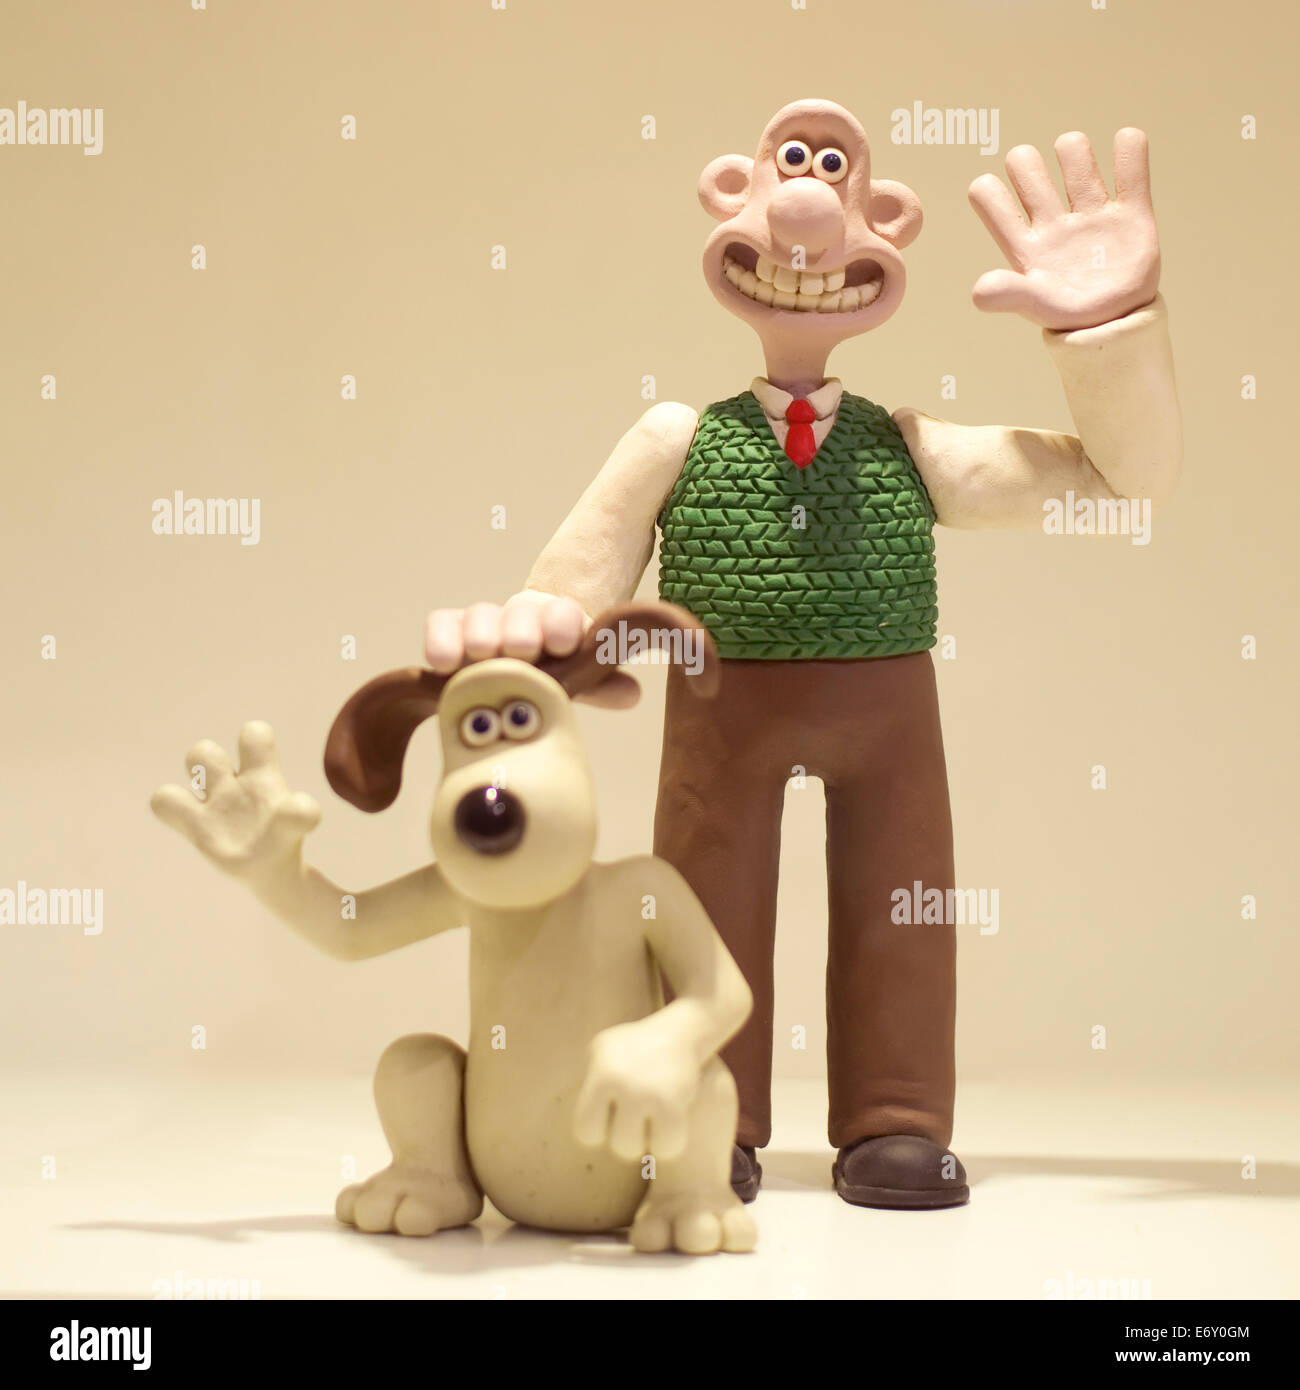 Wallace and Gromit characters waving These models are made from